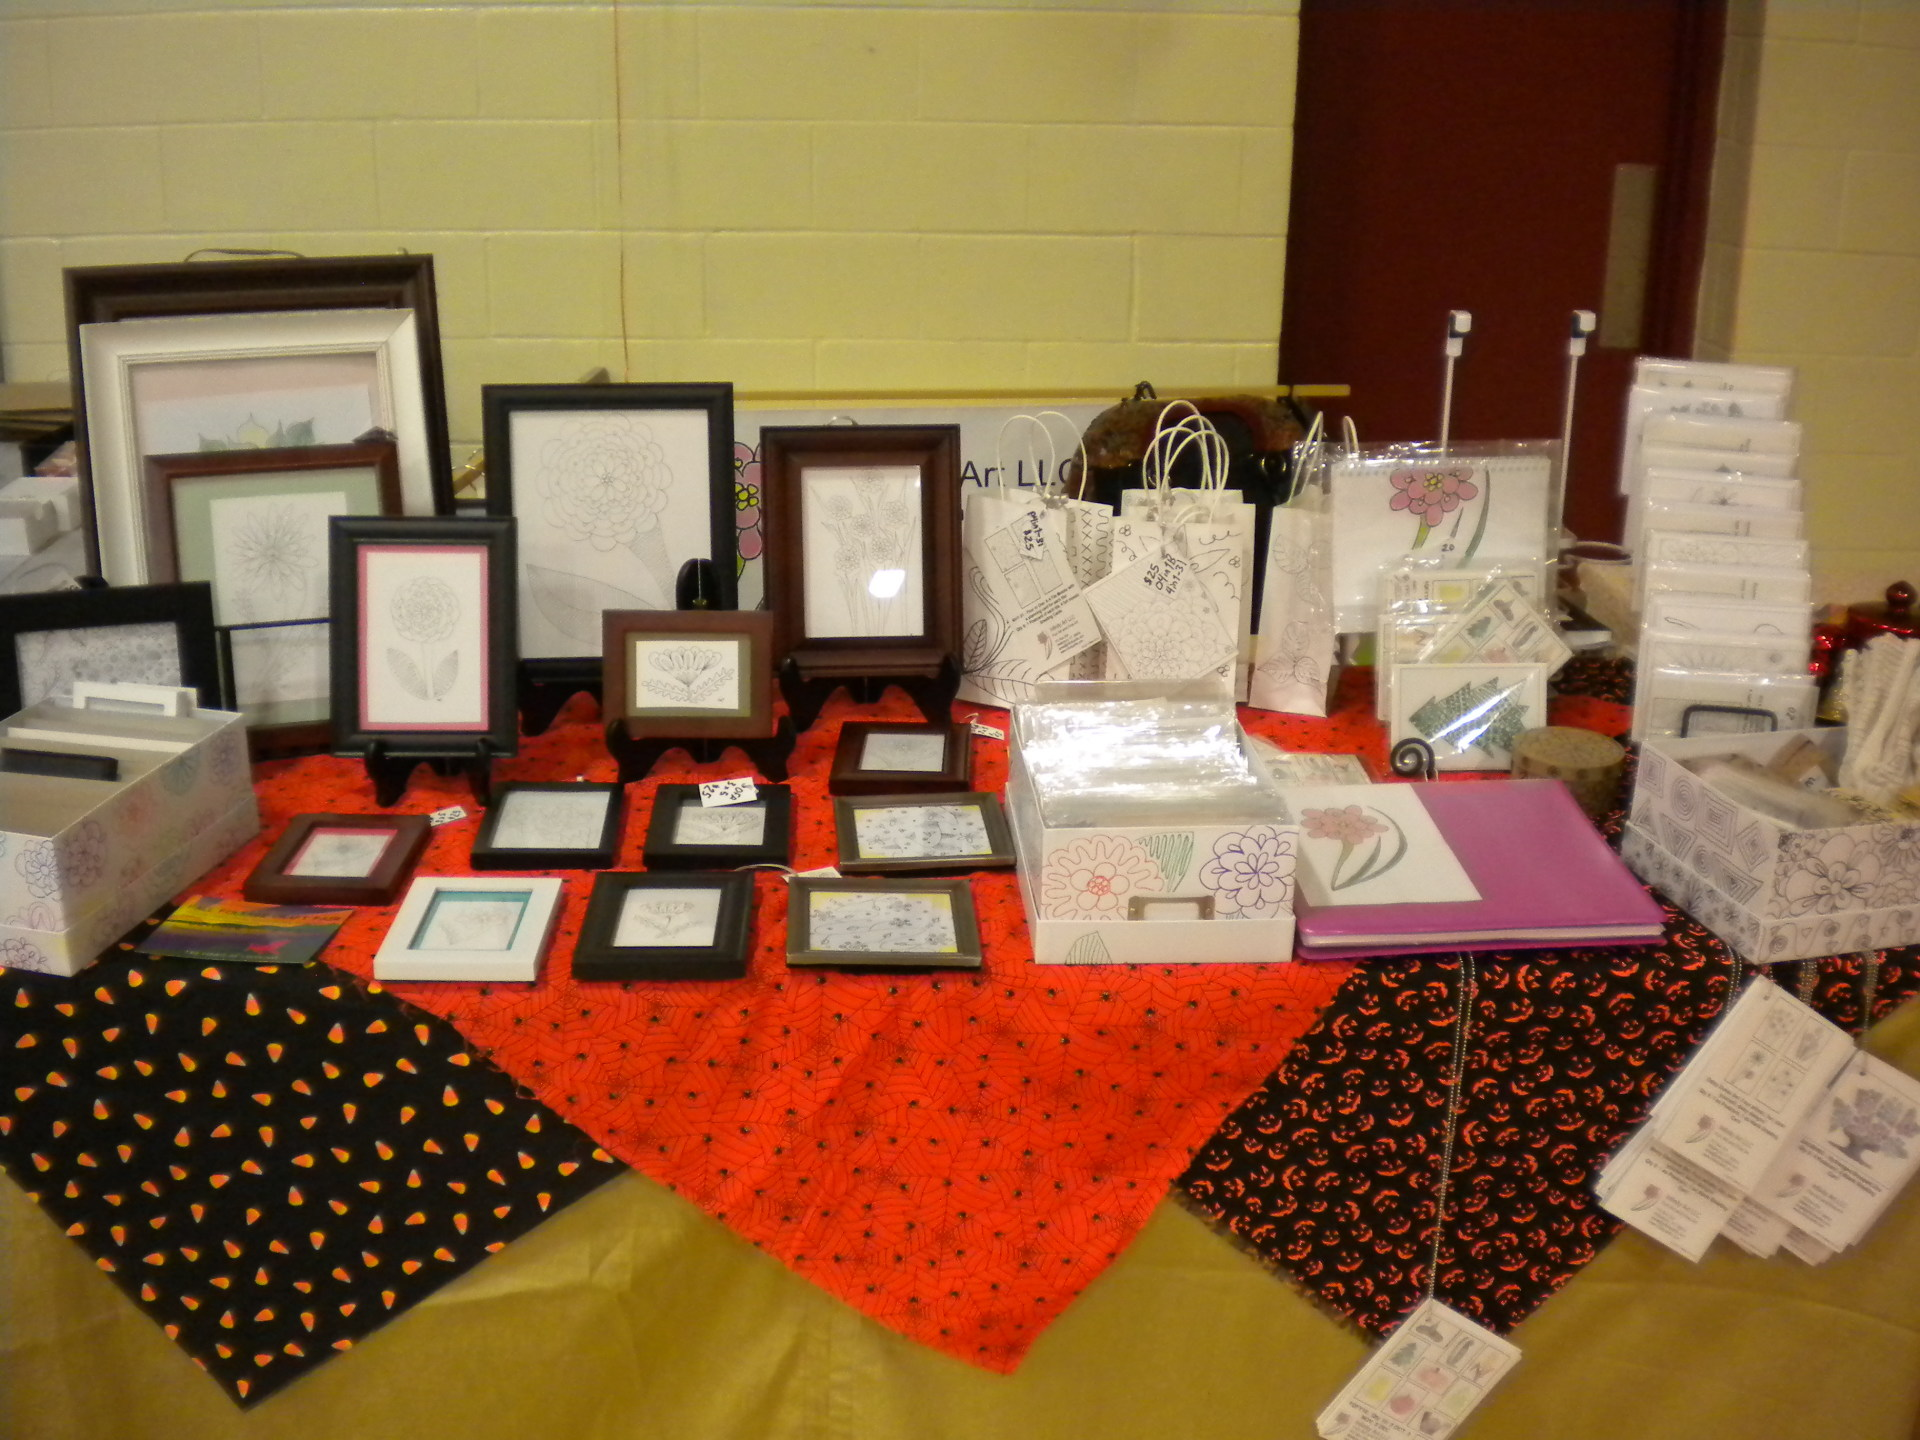 Colorful booth display with Halloween fabric and artwork framed, cards, color bags, and centerpieces